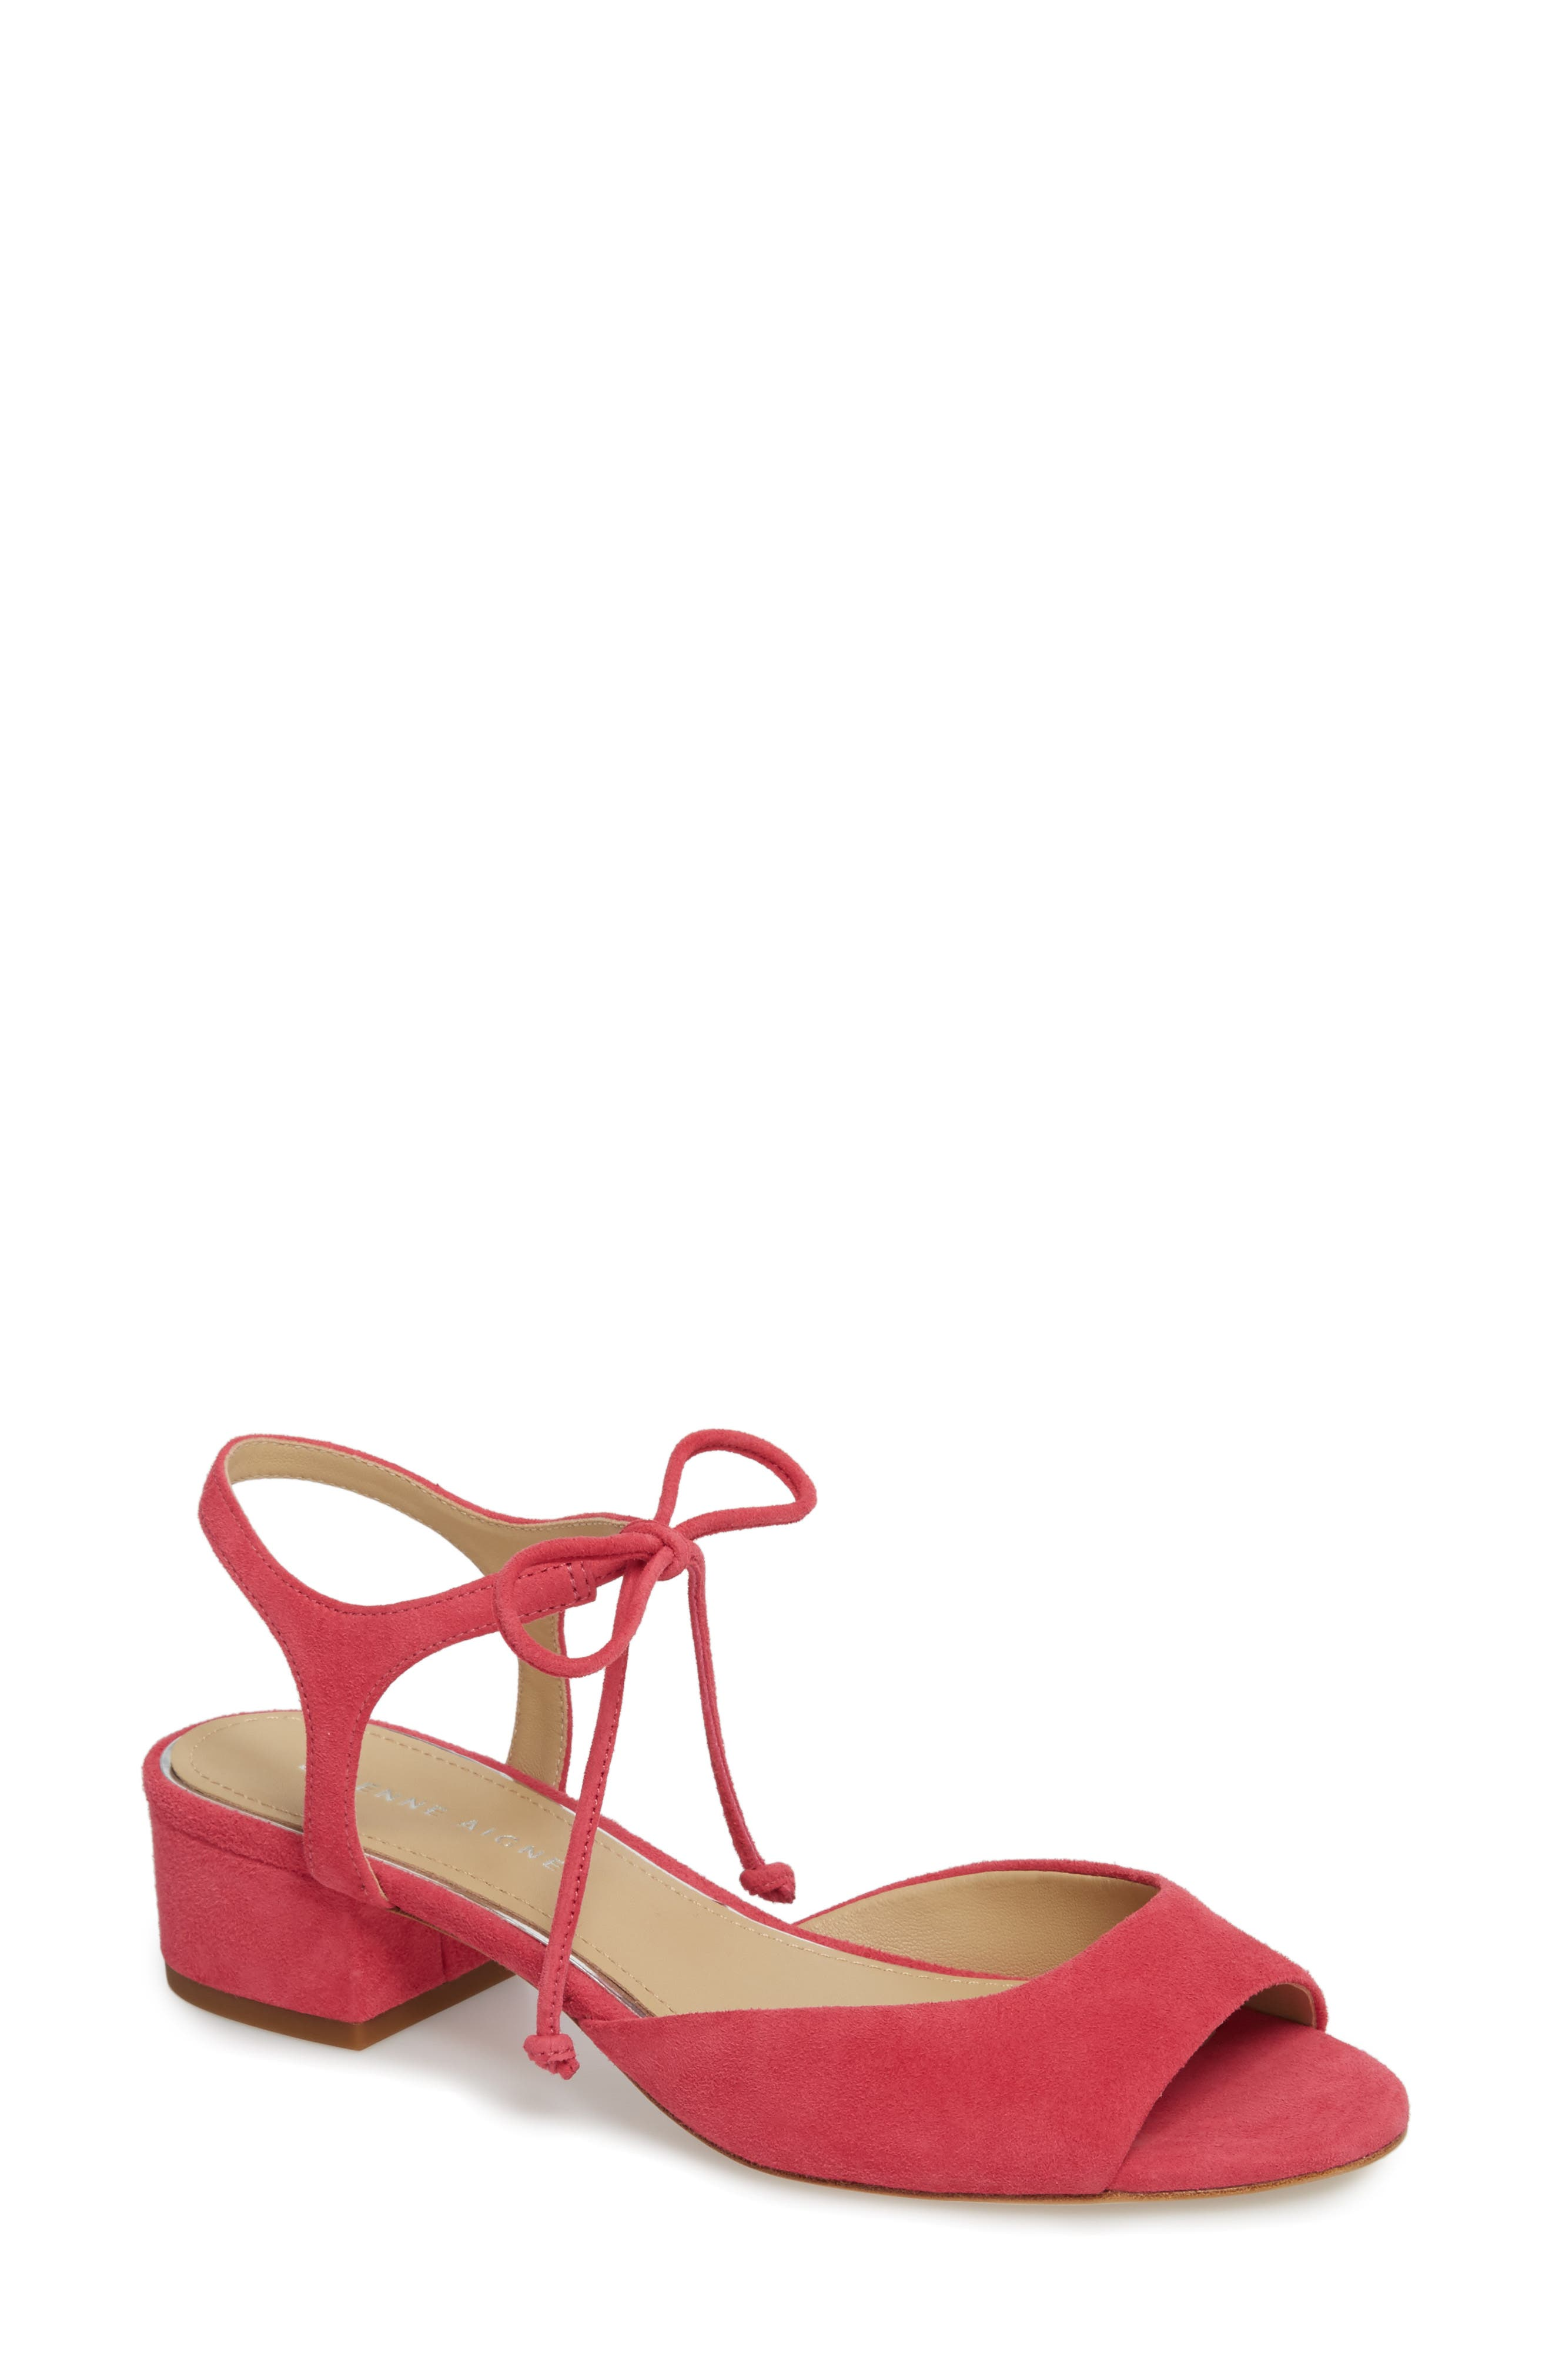 Belize Strappy Sandal,                             Main thumbnail 1, color,                             Peony Suede